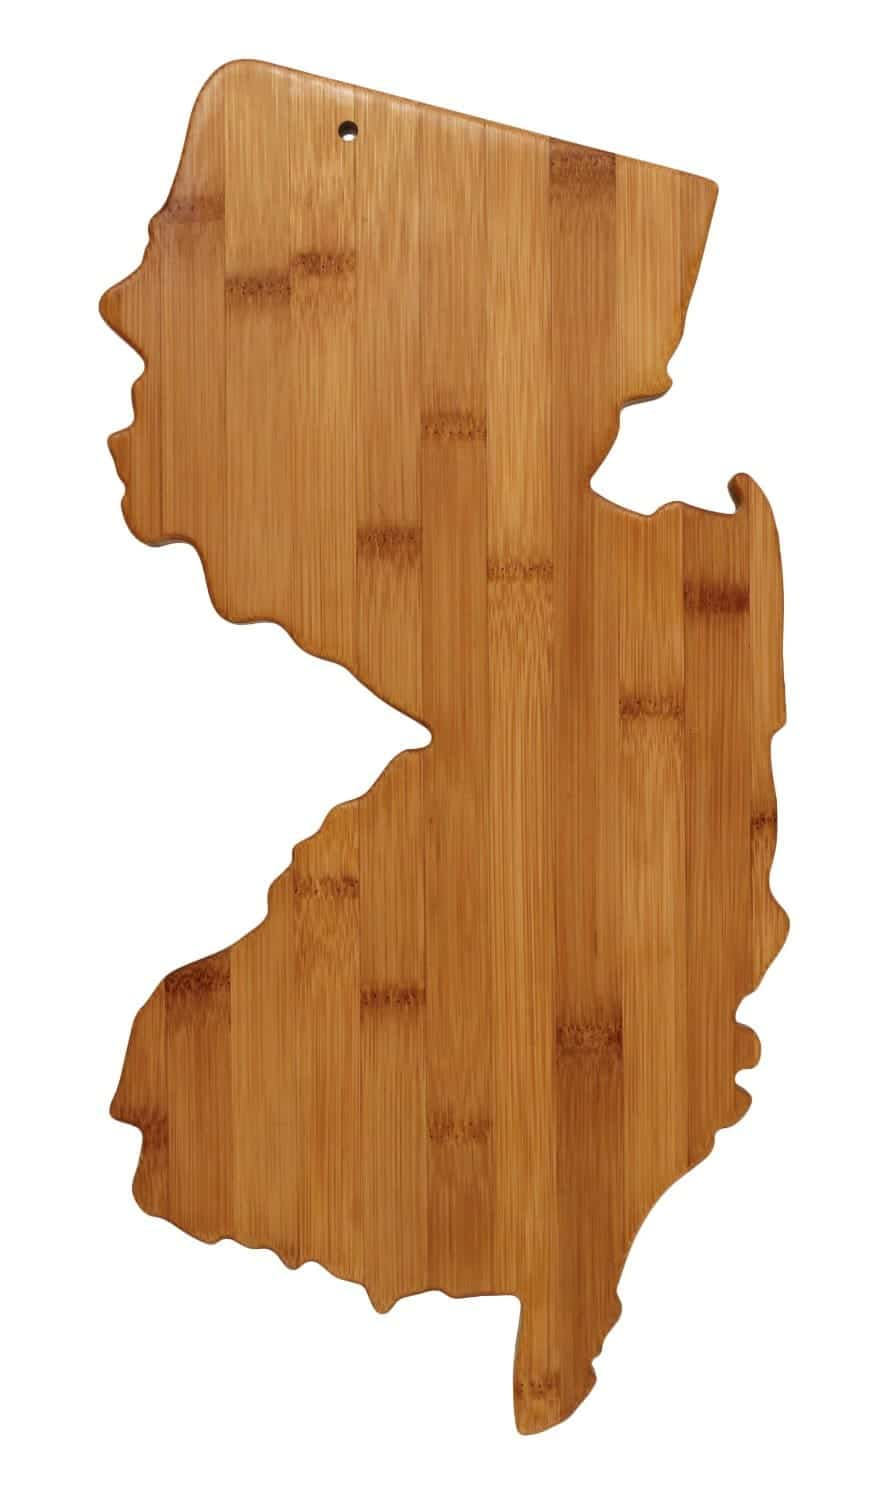 New Jersey Bamboo Cutting Board